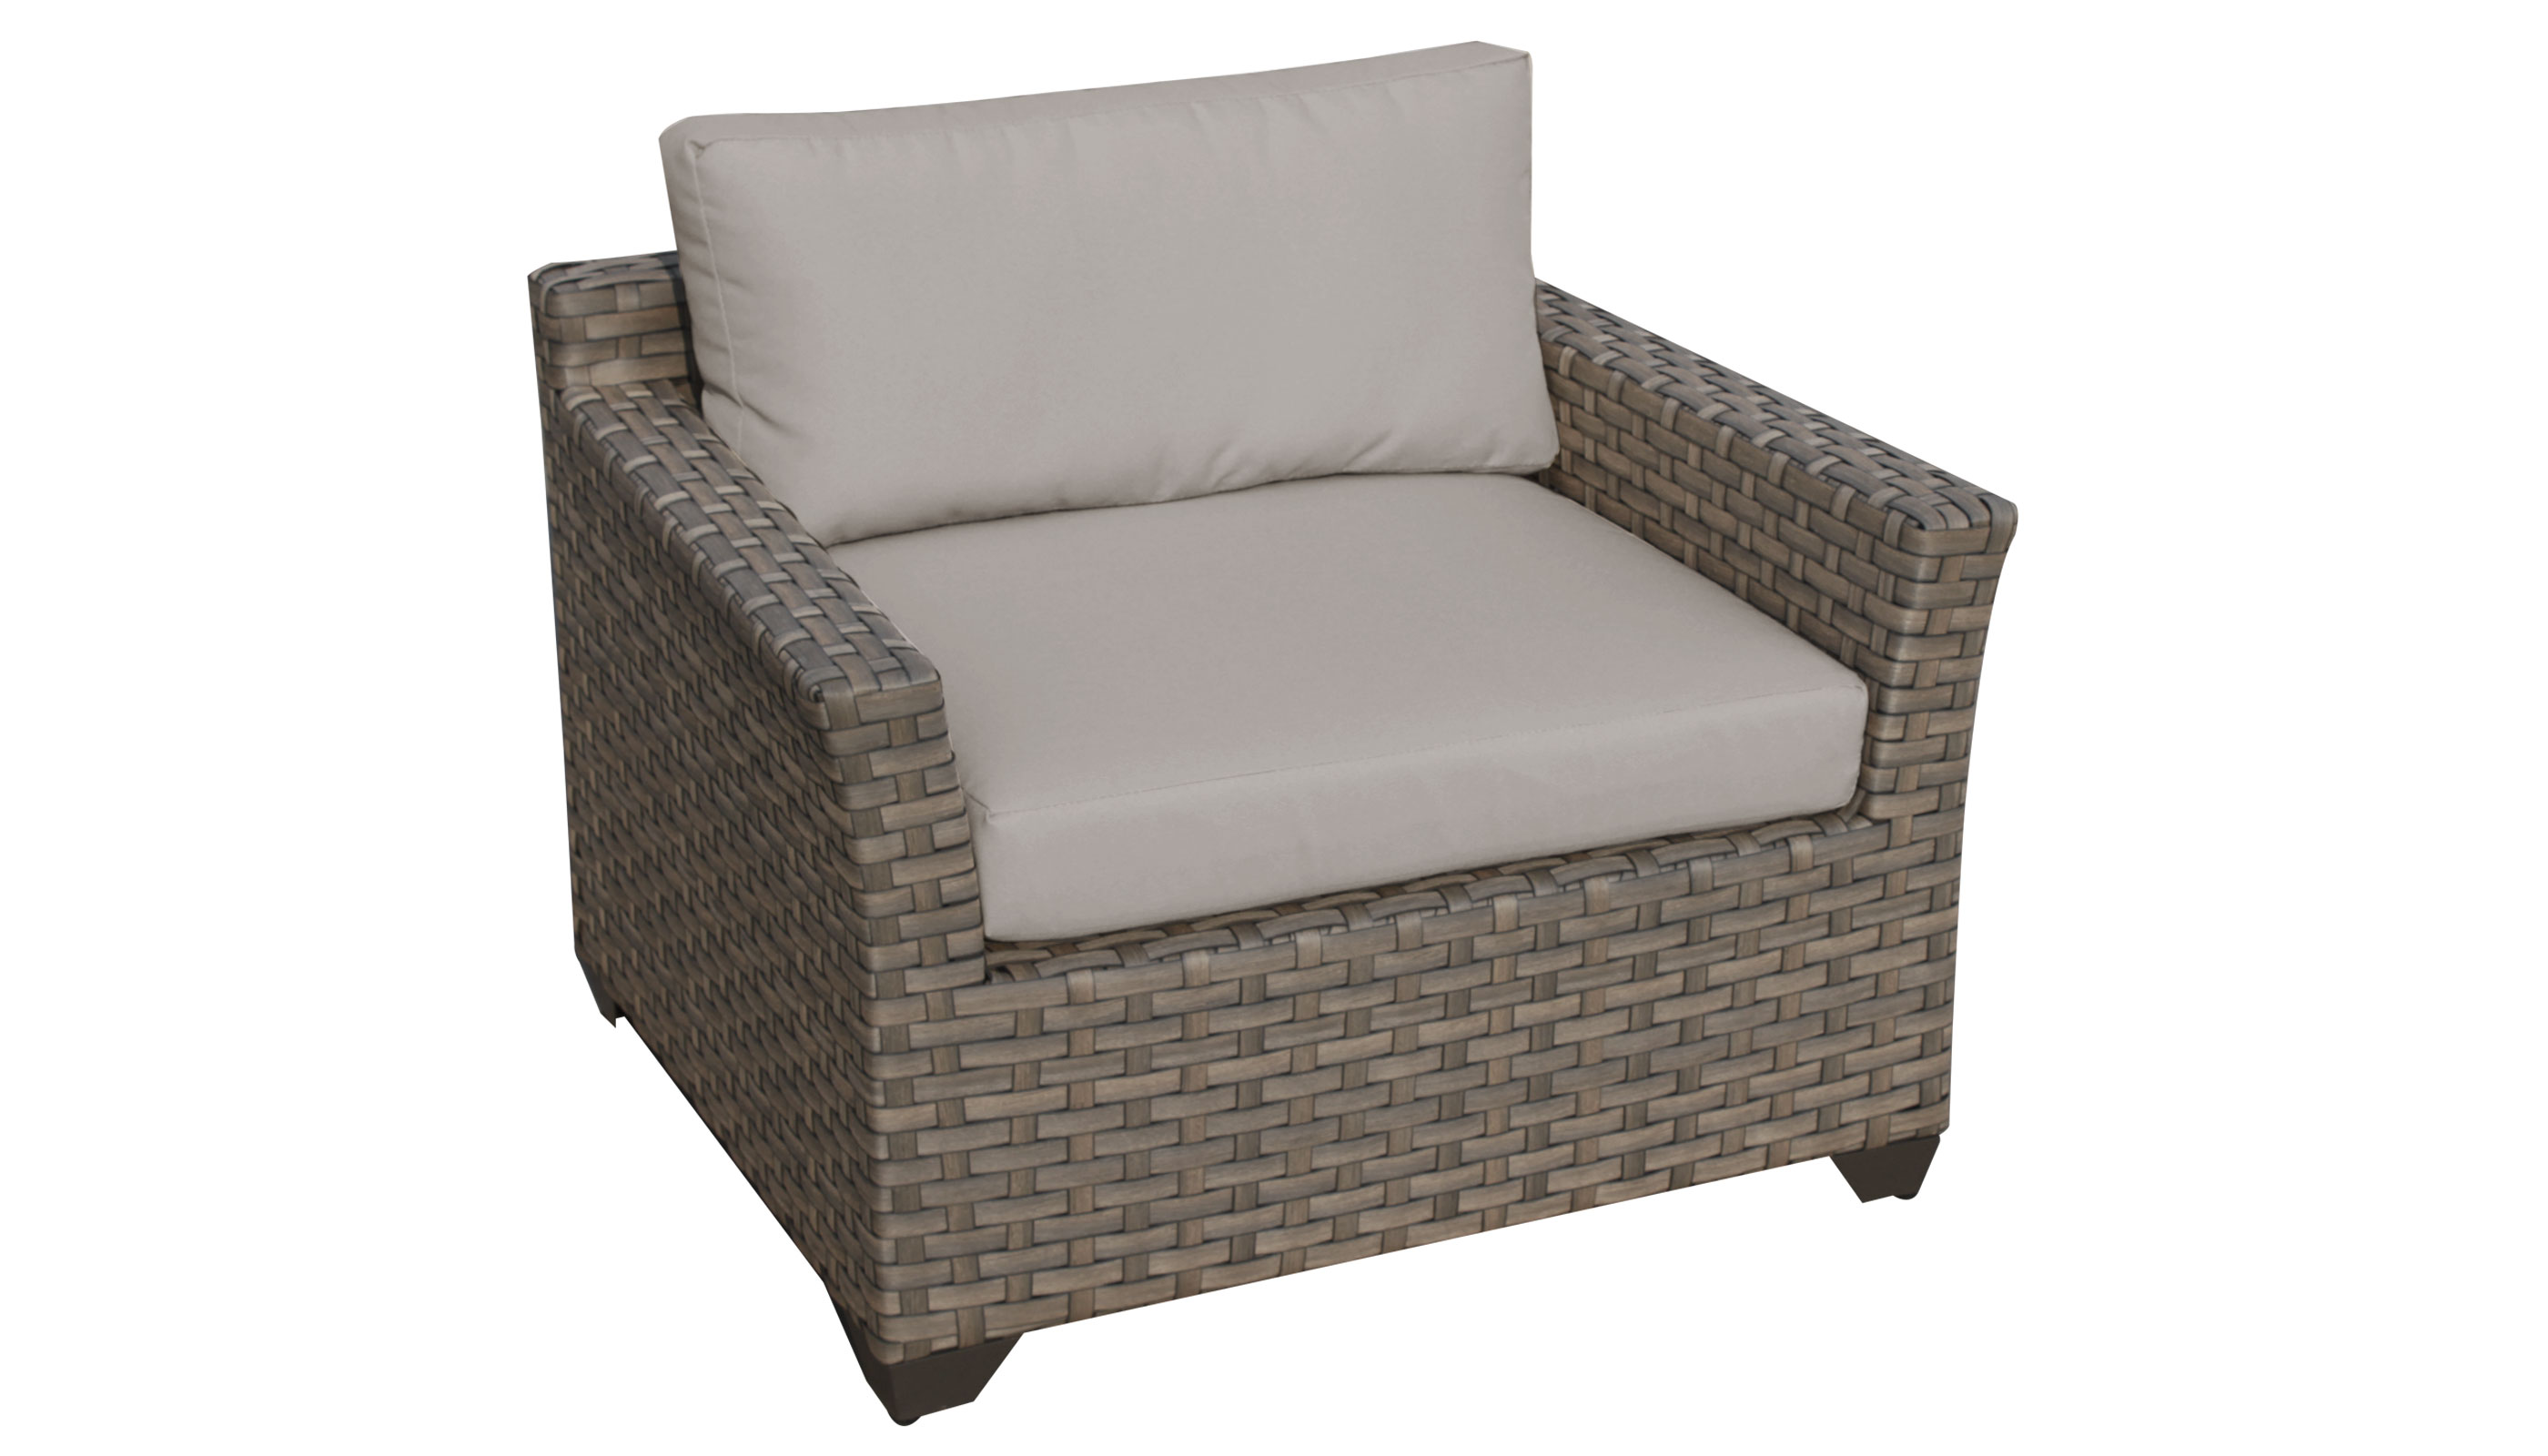 Monterey 7 Piece Outdoor Wicker Patio Furniture Set 07c -